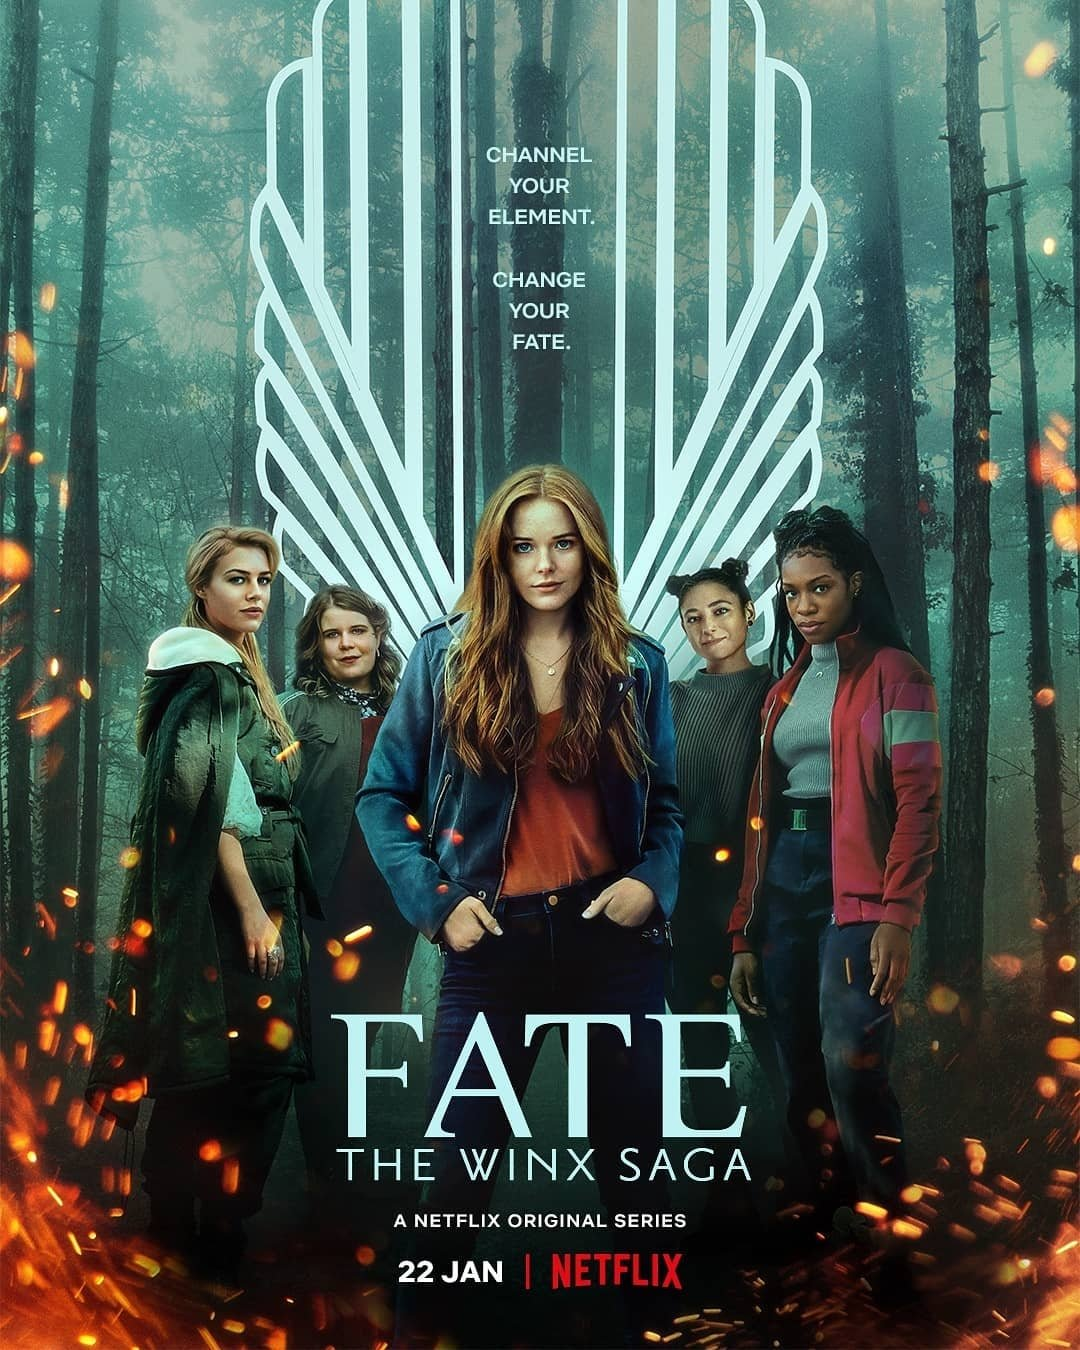 Fate The Winx Saga 2021 S01 Hindi Complete Netflix Web Series 1080p HDRip 4350MB Download